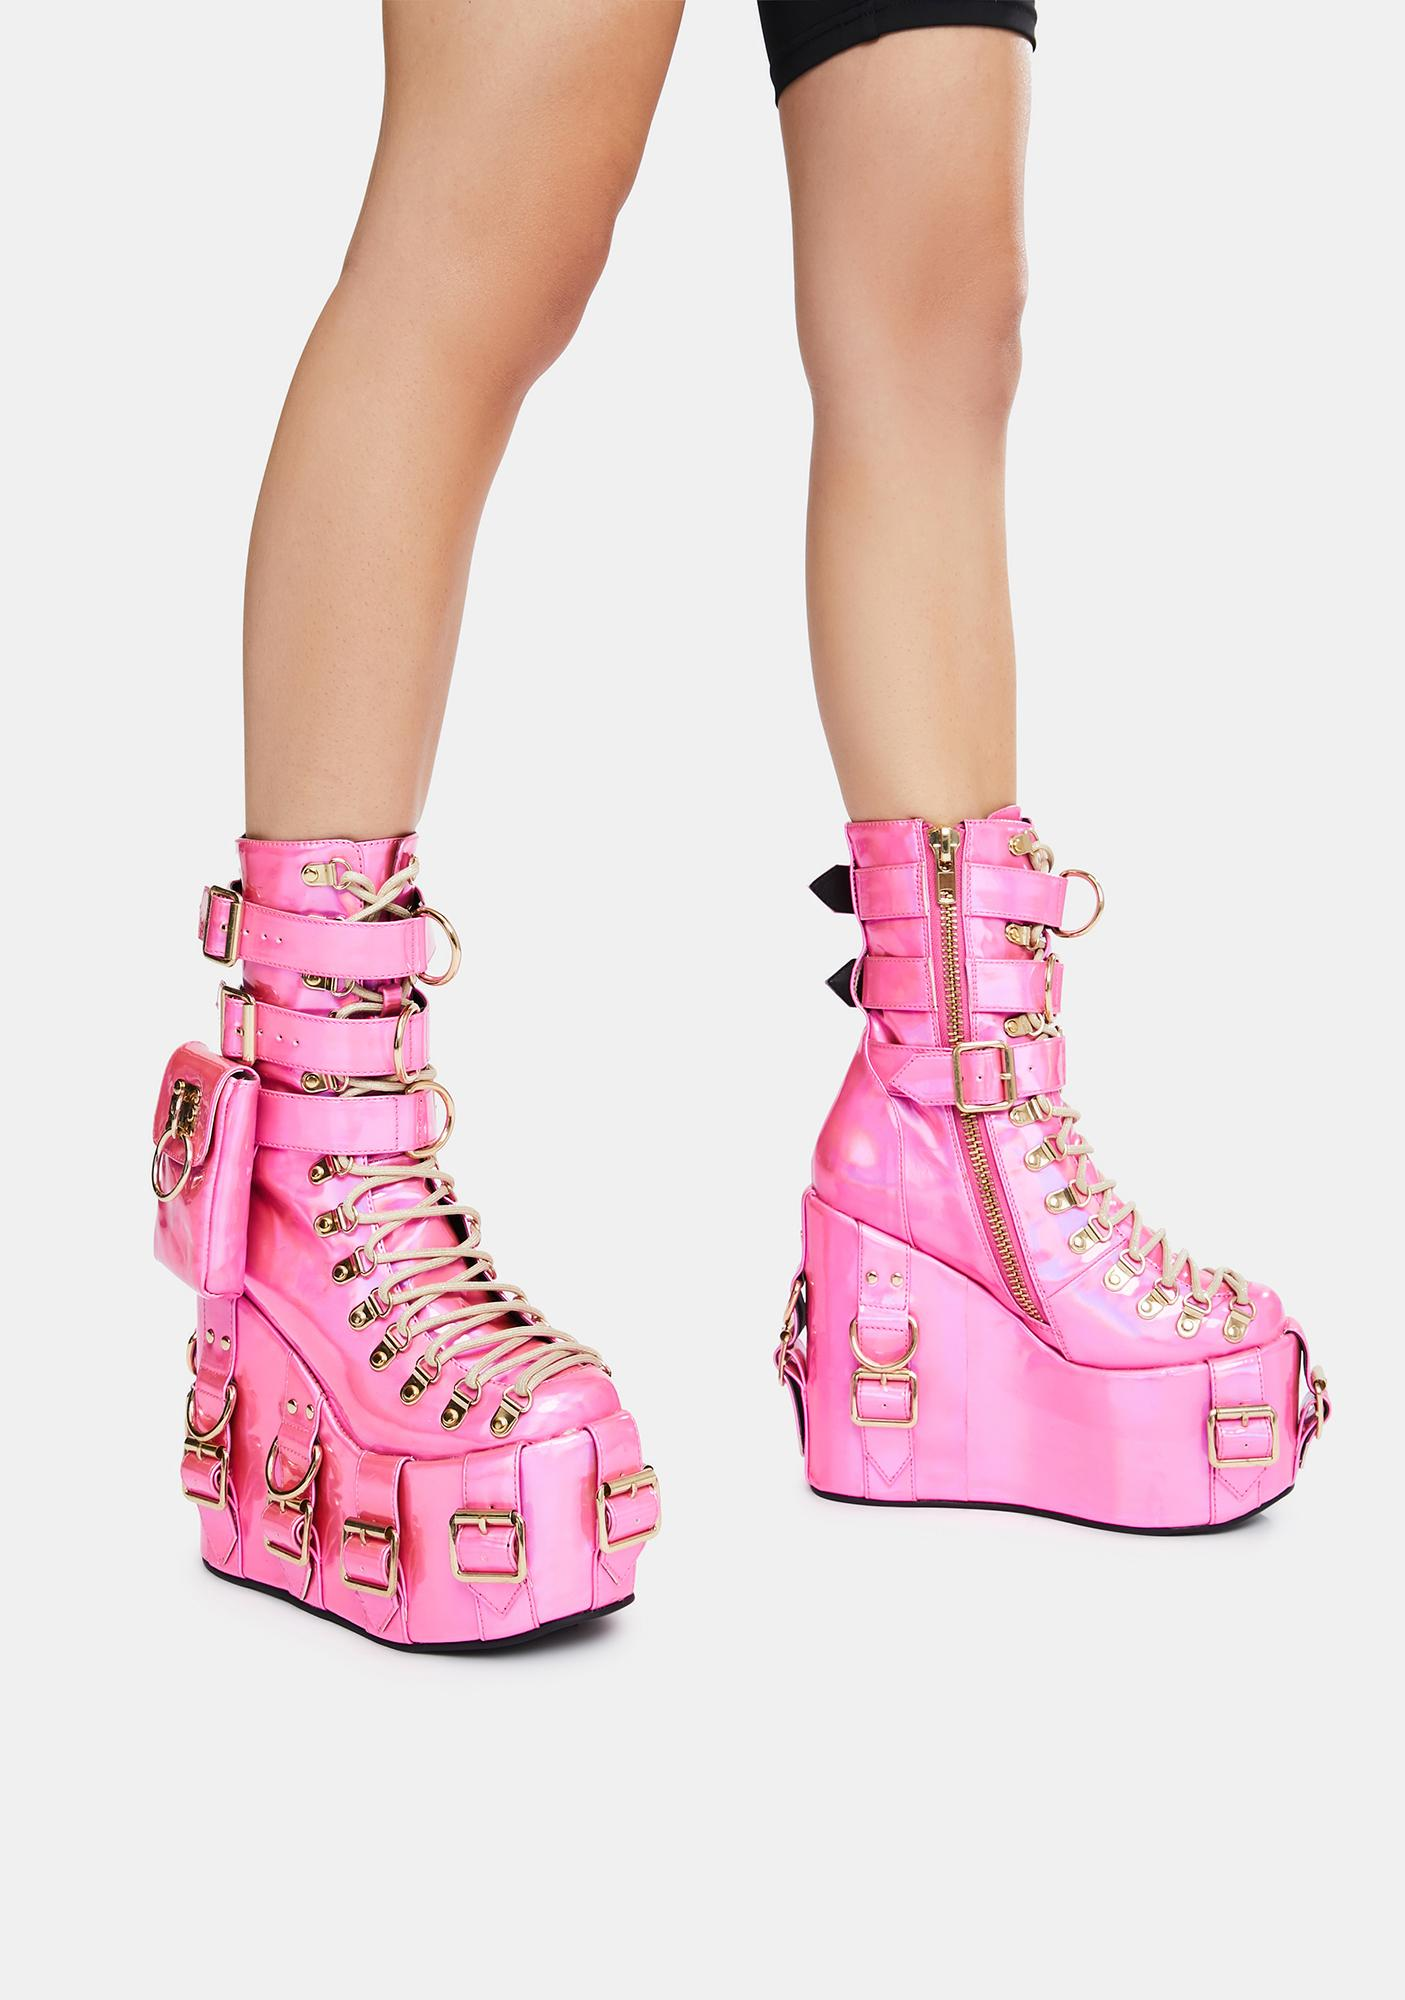 Club Exx Sweetest Bounty Holographic Traitor Boots